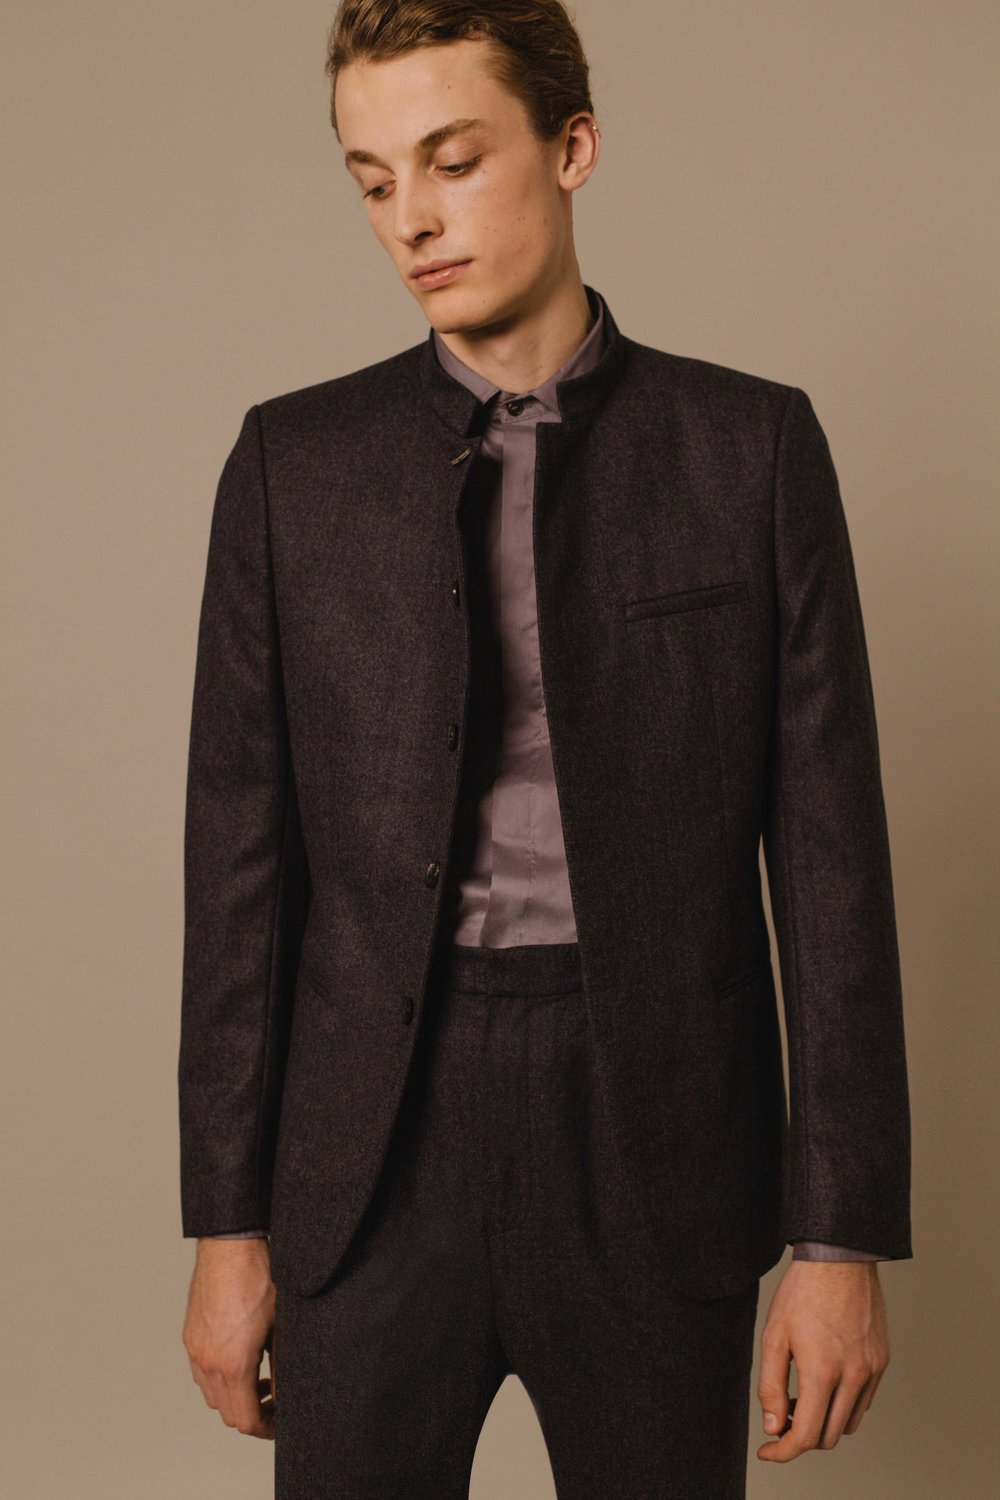 Bombay jacket charcoal wool Slim fit trousers charcoal wool Classic shirt grey Made in Italy